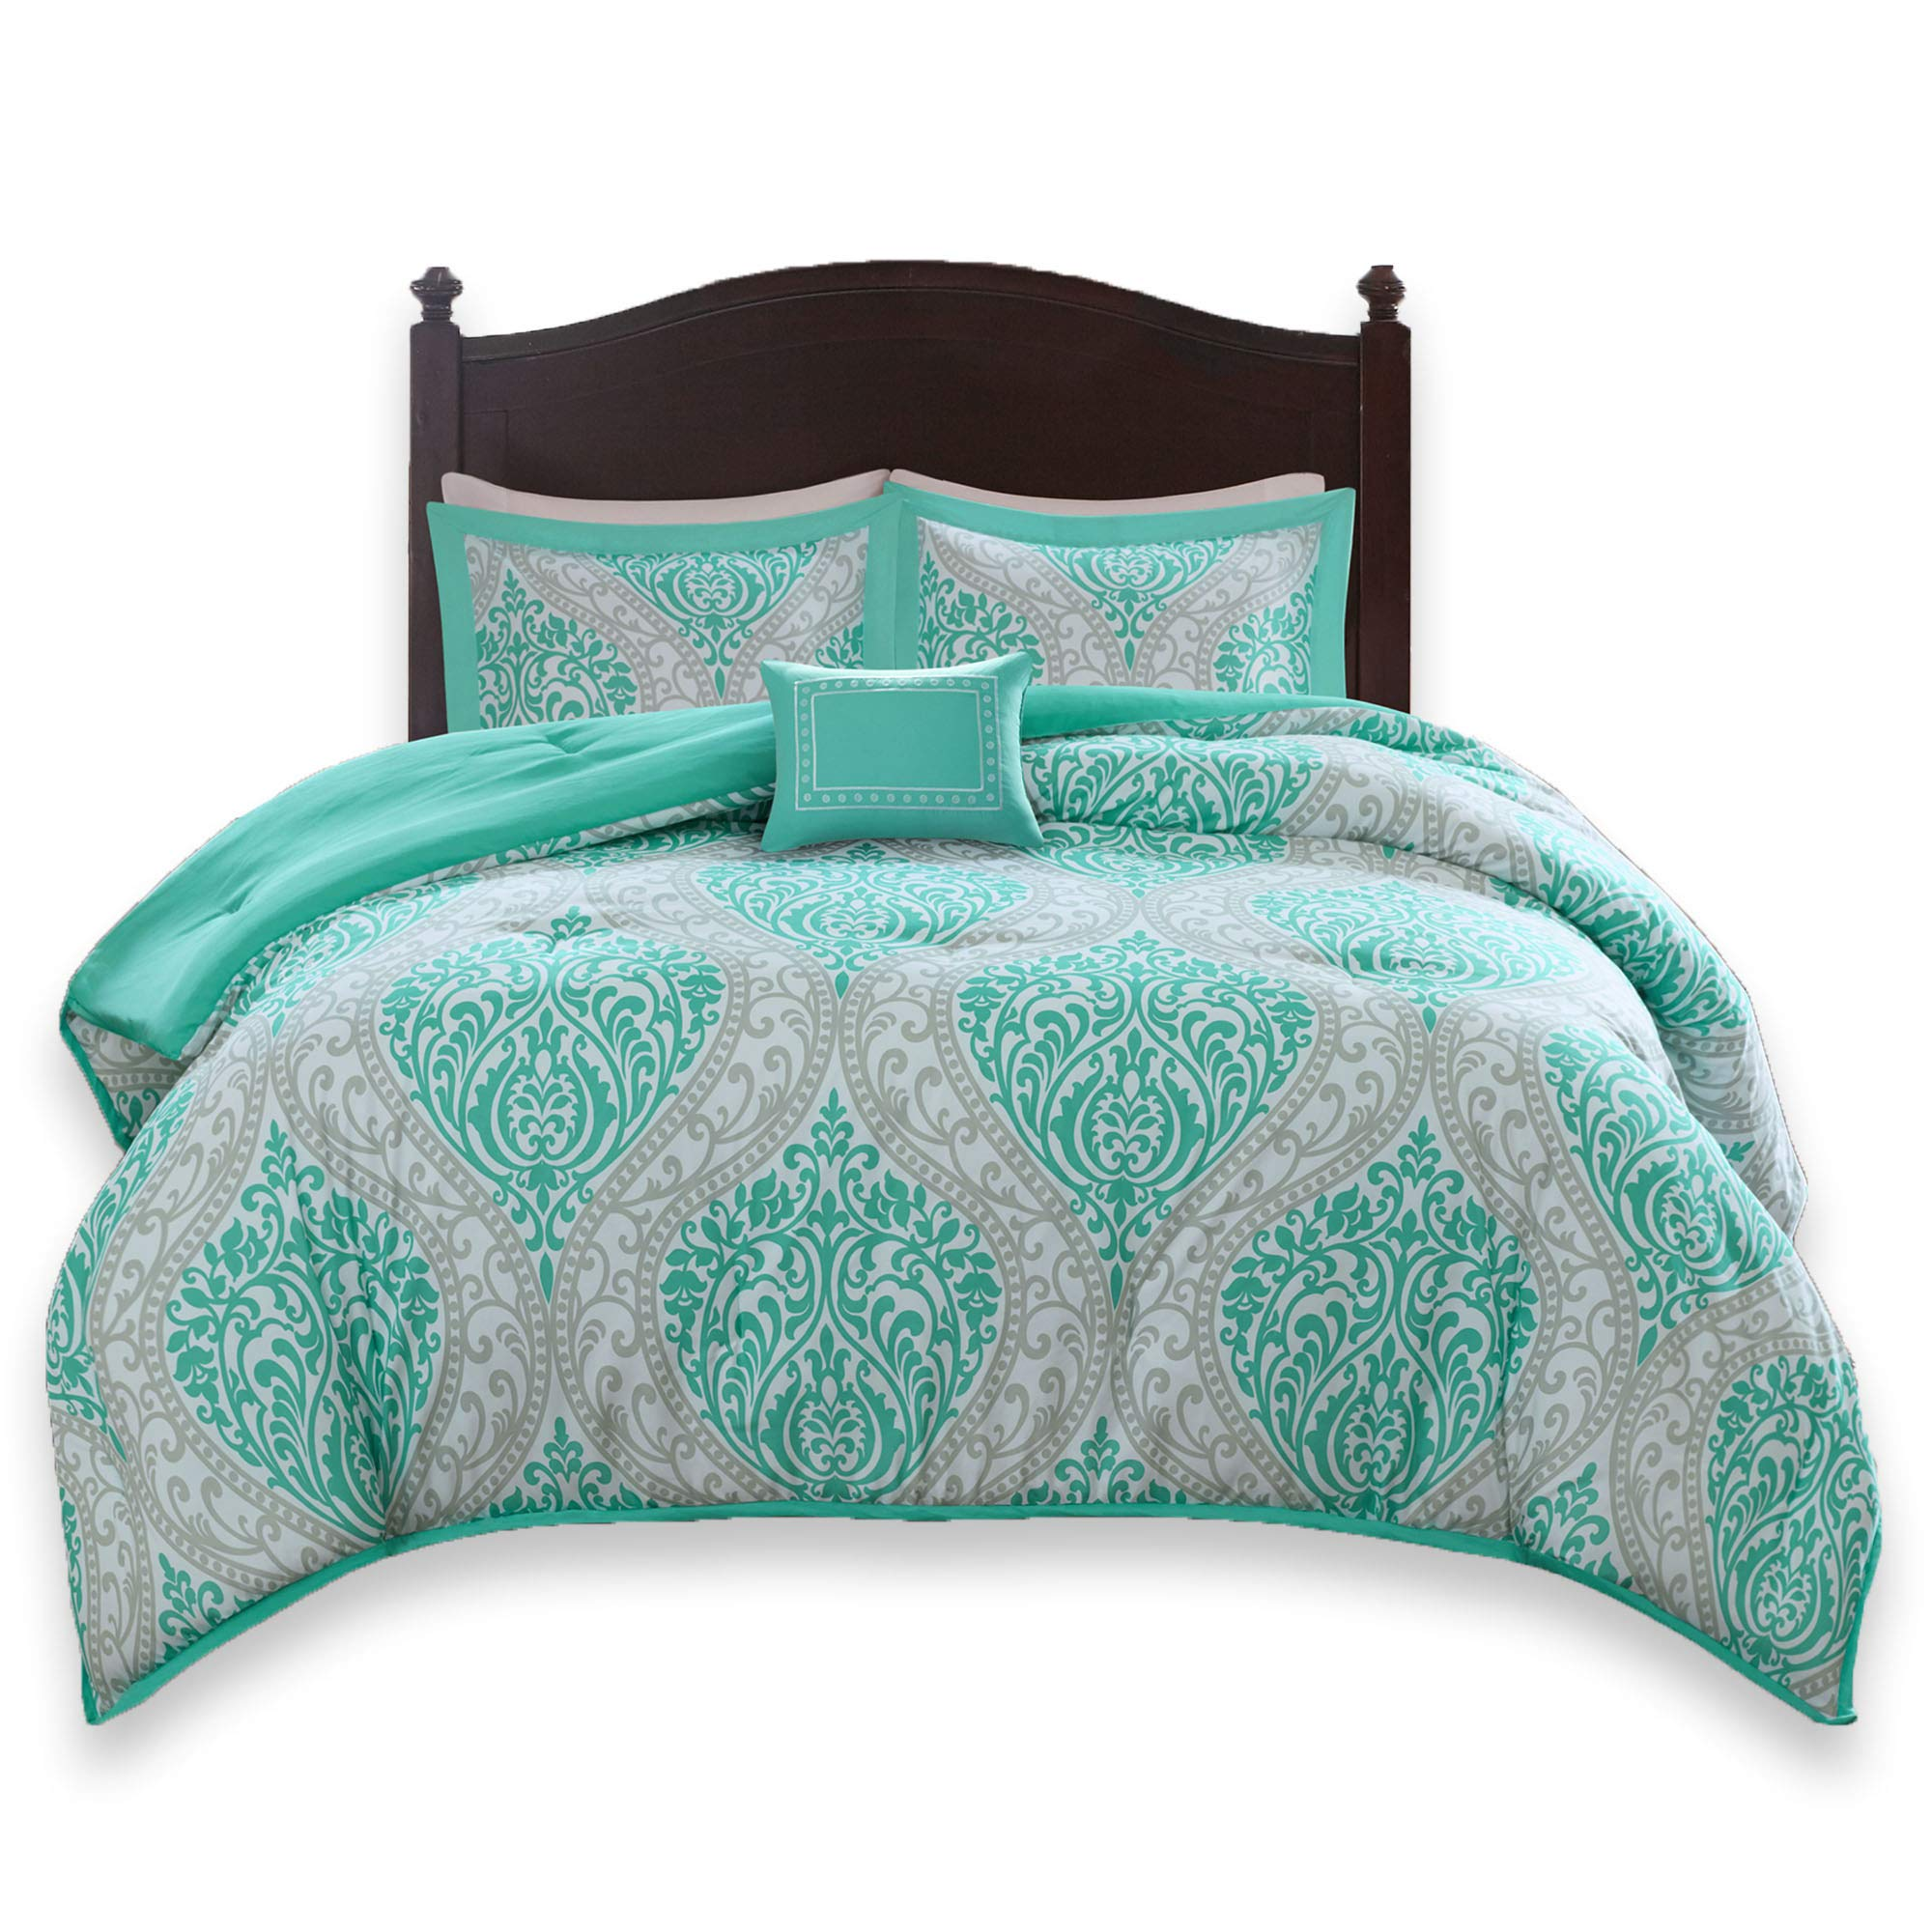 Comfort Spaces - Coco Goose Down Alternative Comforter Set - 4 Pieces - Teal and Grey - All Season Full/Queen Comforter Set, Includes 1 Comforter, 2 Shams, 1 Decorative Pillow- Machine Washable